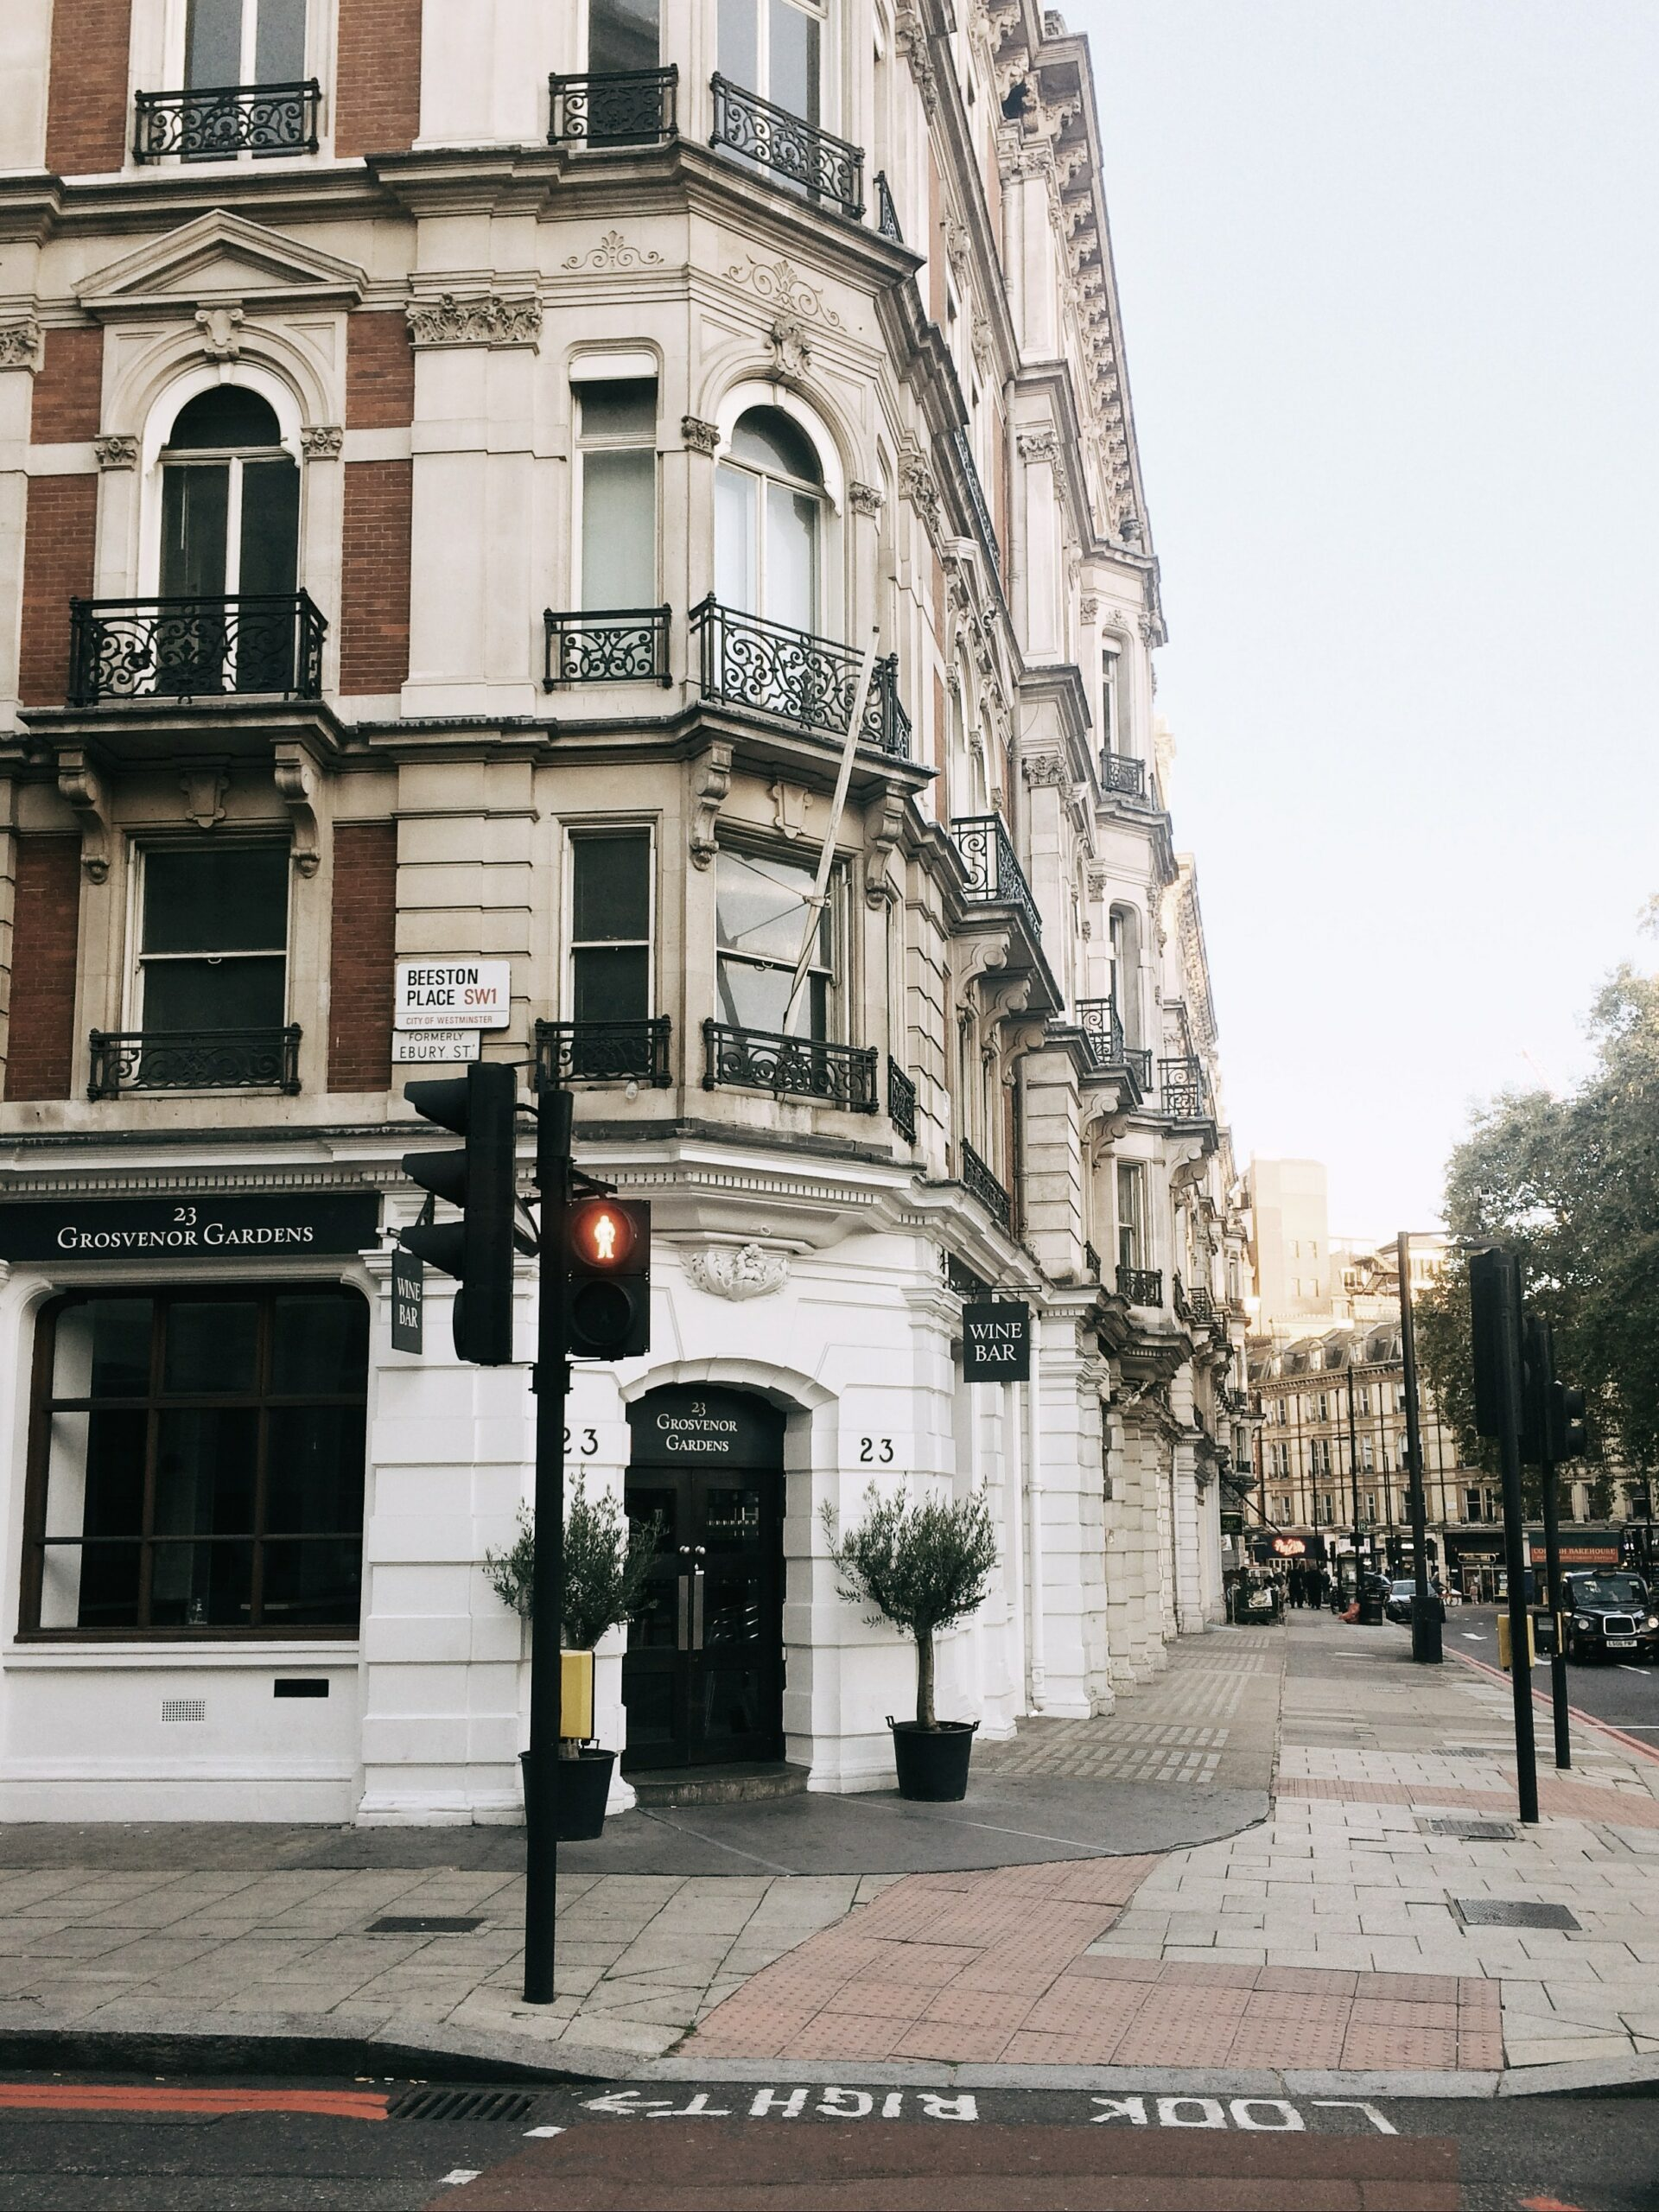 pexels daria shevtsova 698172 scaled - Brexit: what is the impact on the property market?